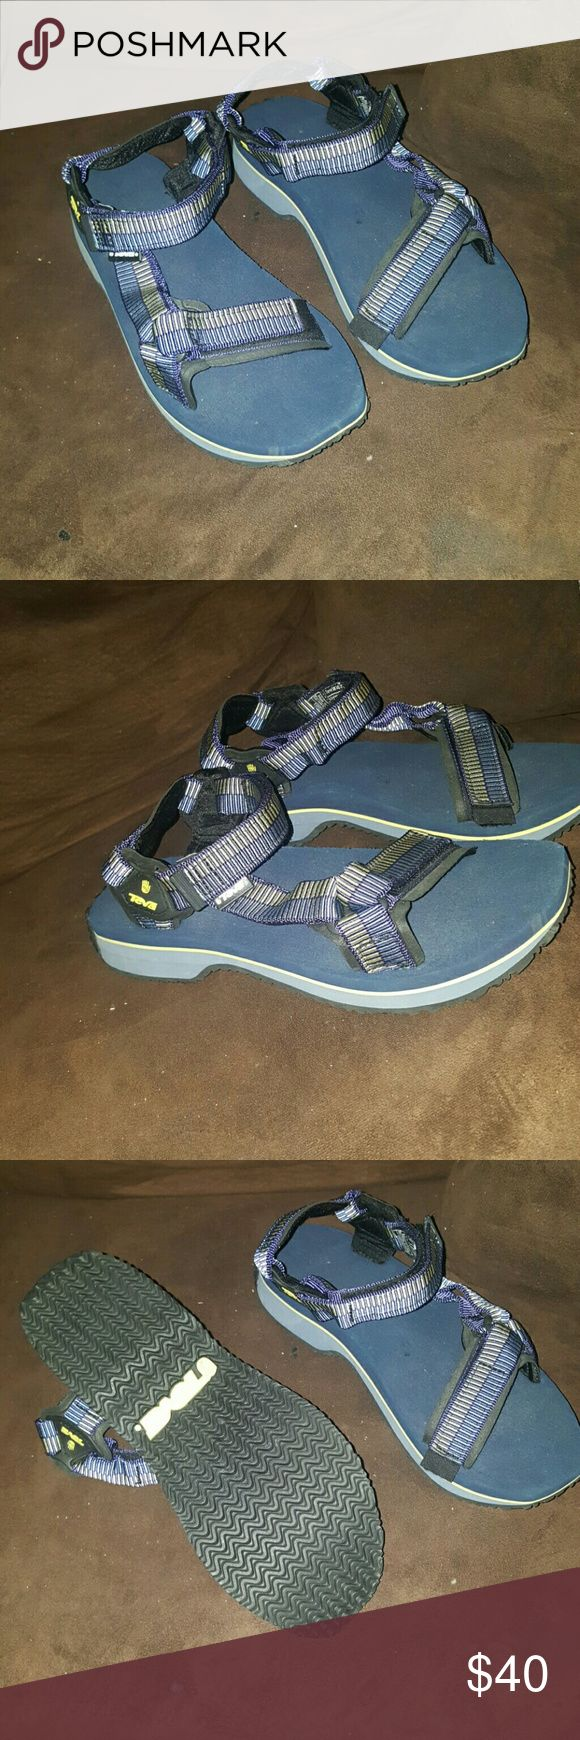 Sandals or shoes for hiking - Nwob Teva 9 Sandals Hiking Shoes Sporty